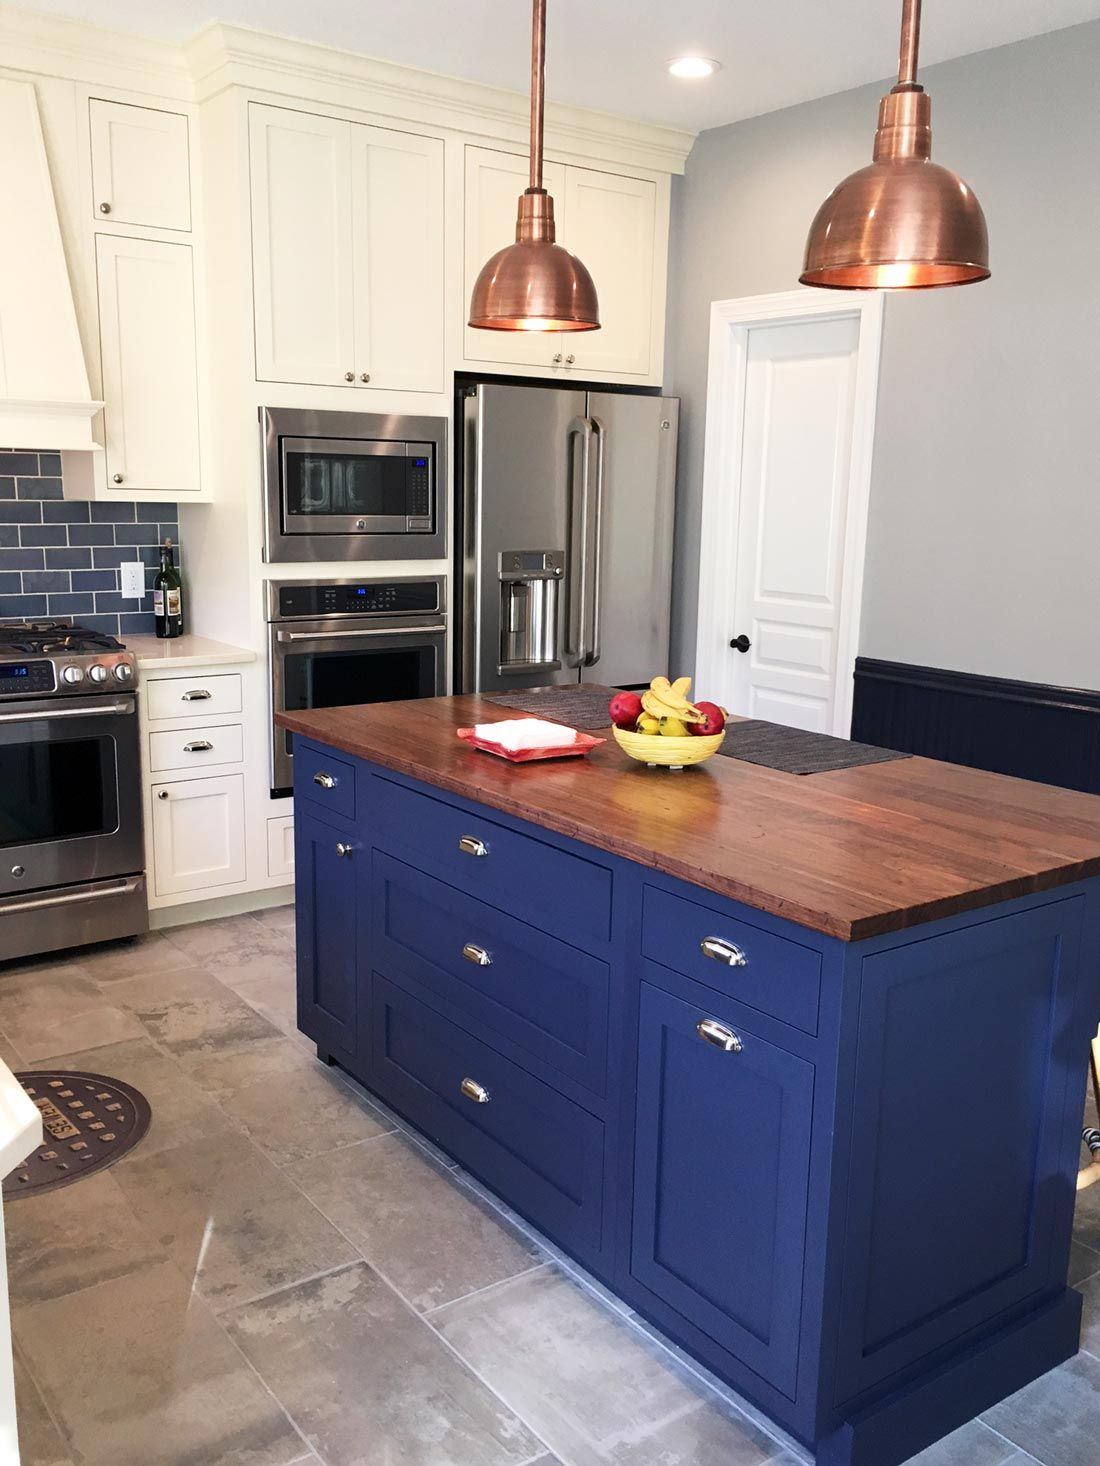 Blue and copper subway tile kitchen in home ideas pinterest